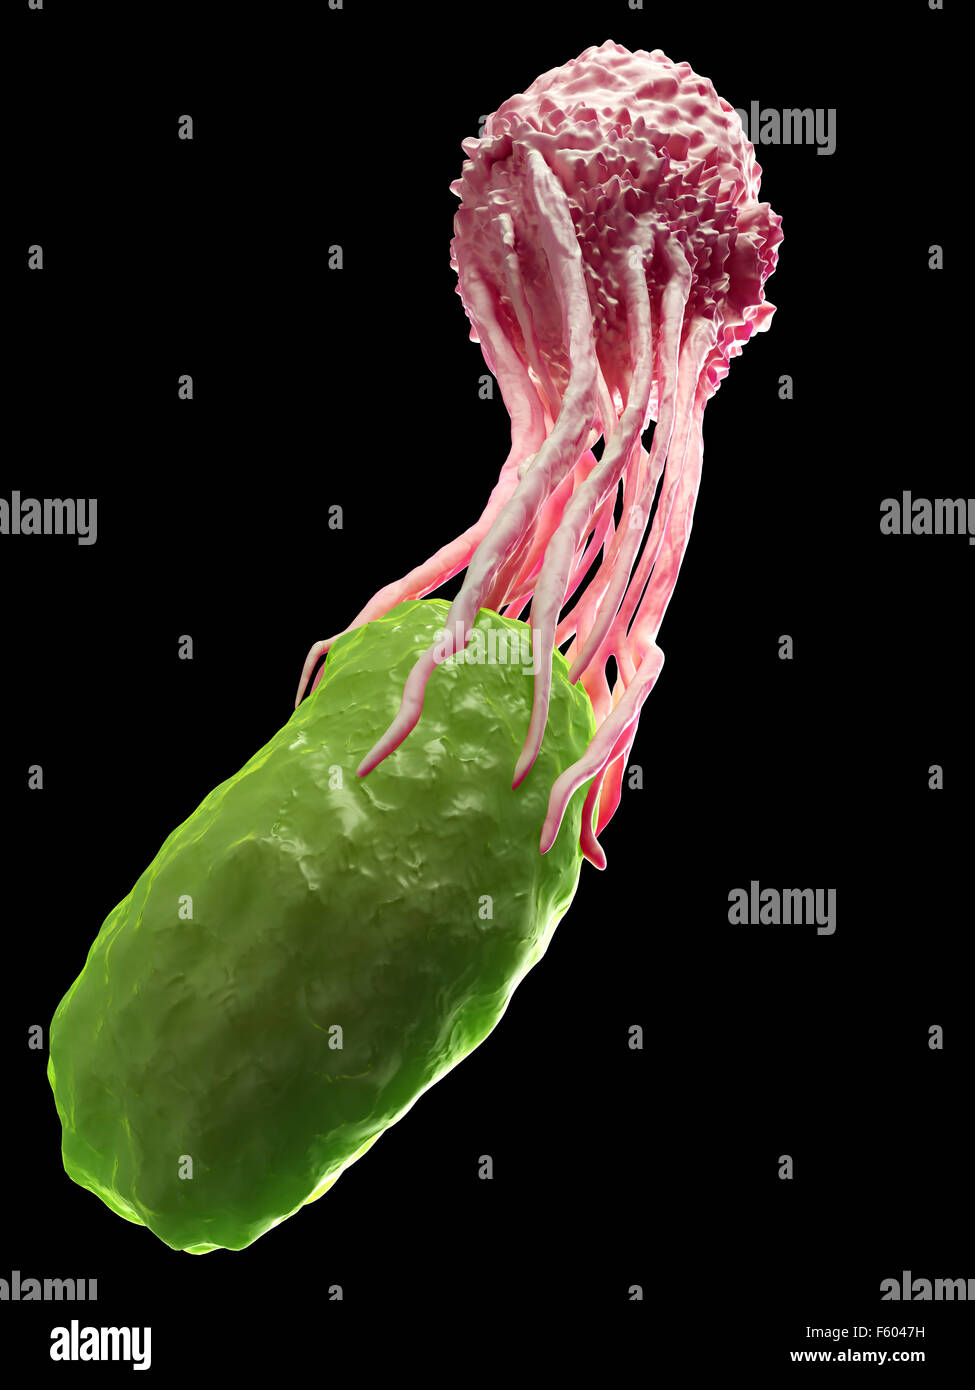 medically accurate illustration of a white blood cell engulfing a bacteria Stock Photo